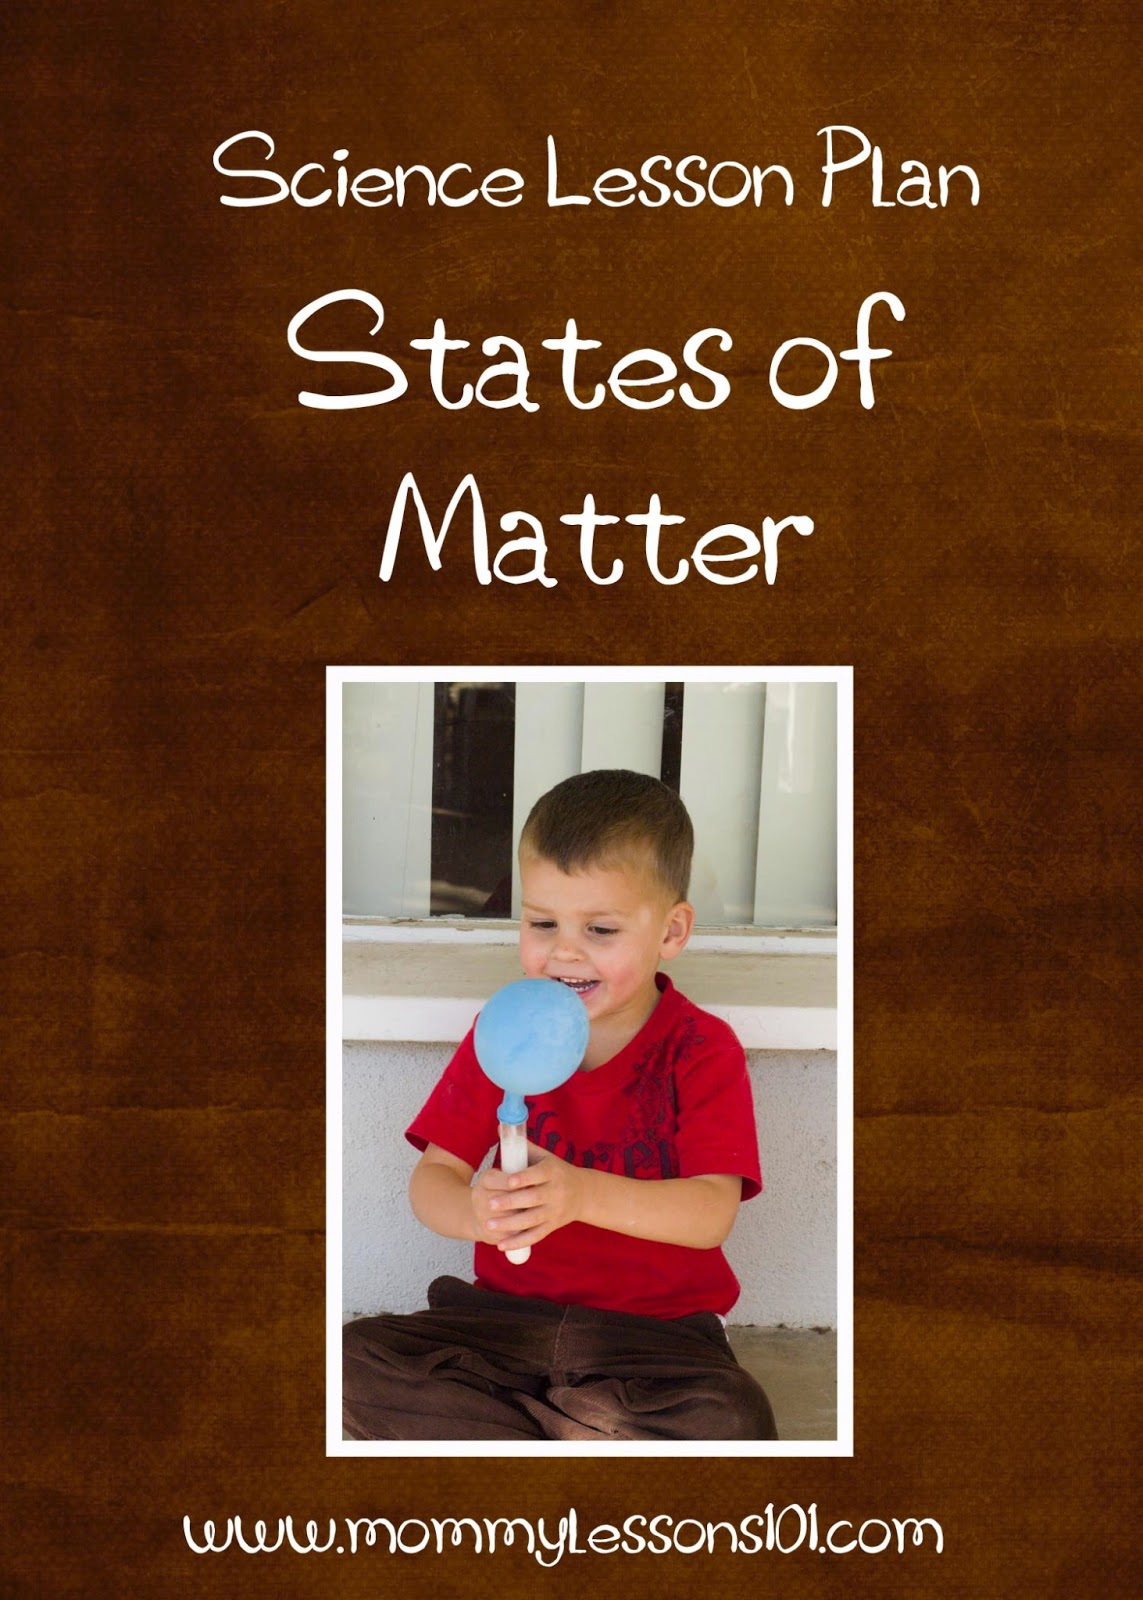 Mommy Lessons 101 Science Lesson Plan States Of Matter